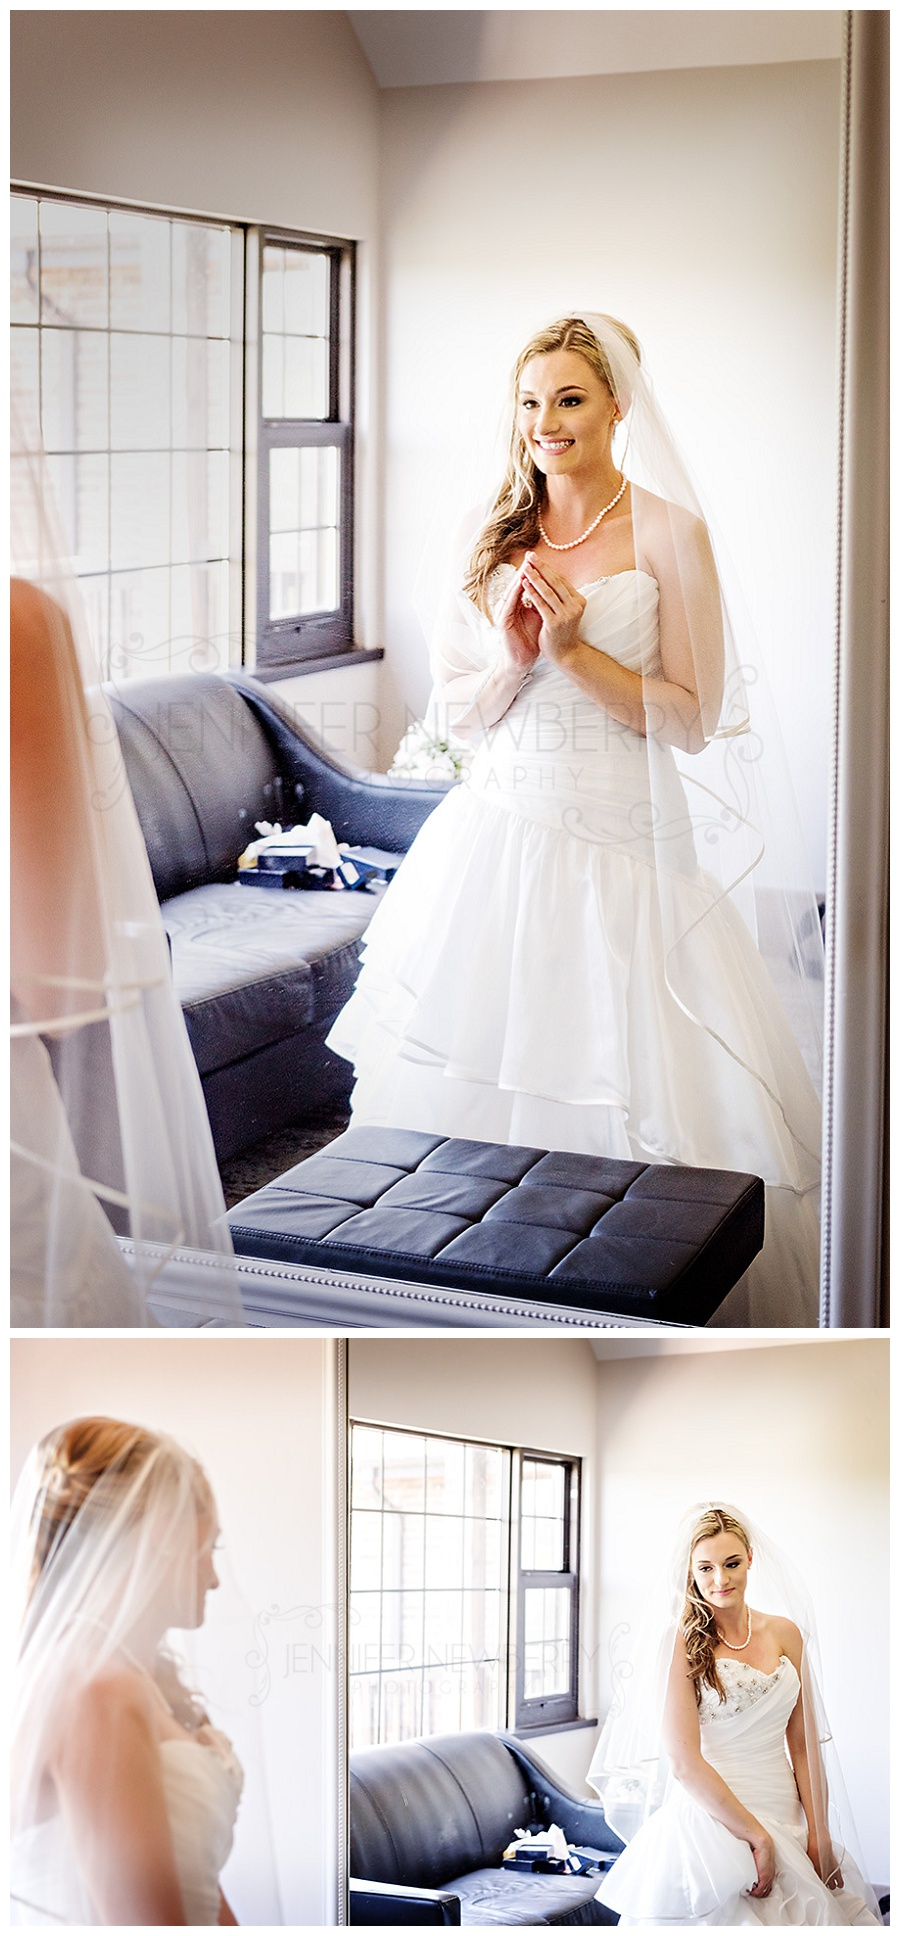 The Manor wedding bride prep photos by The Manor wedding photographer www.jnphotography.ca @filemanager